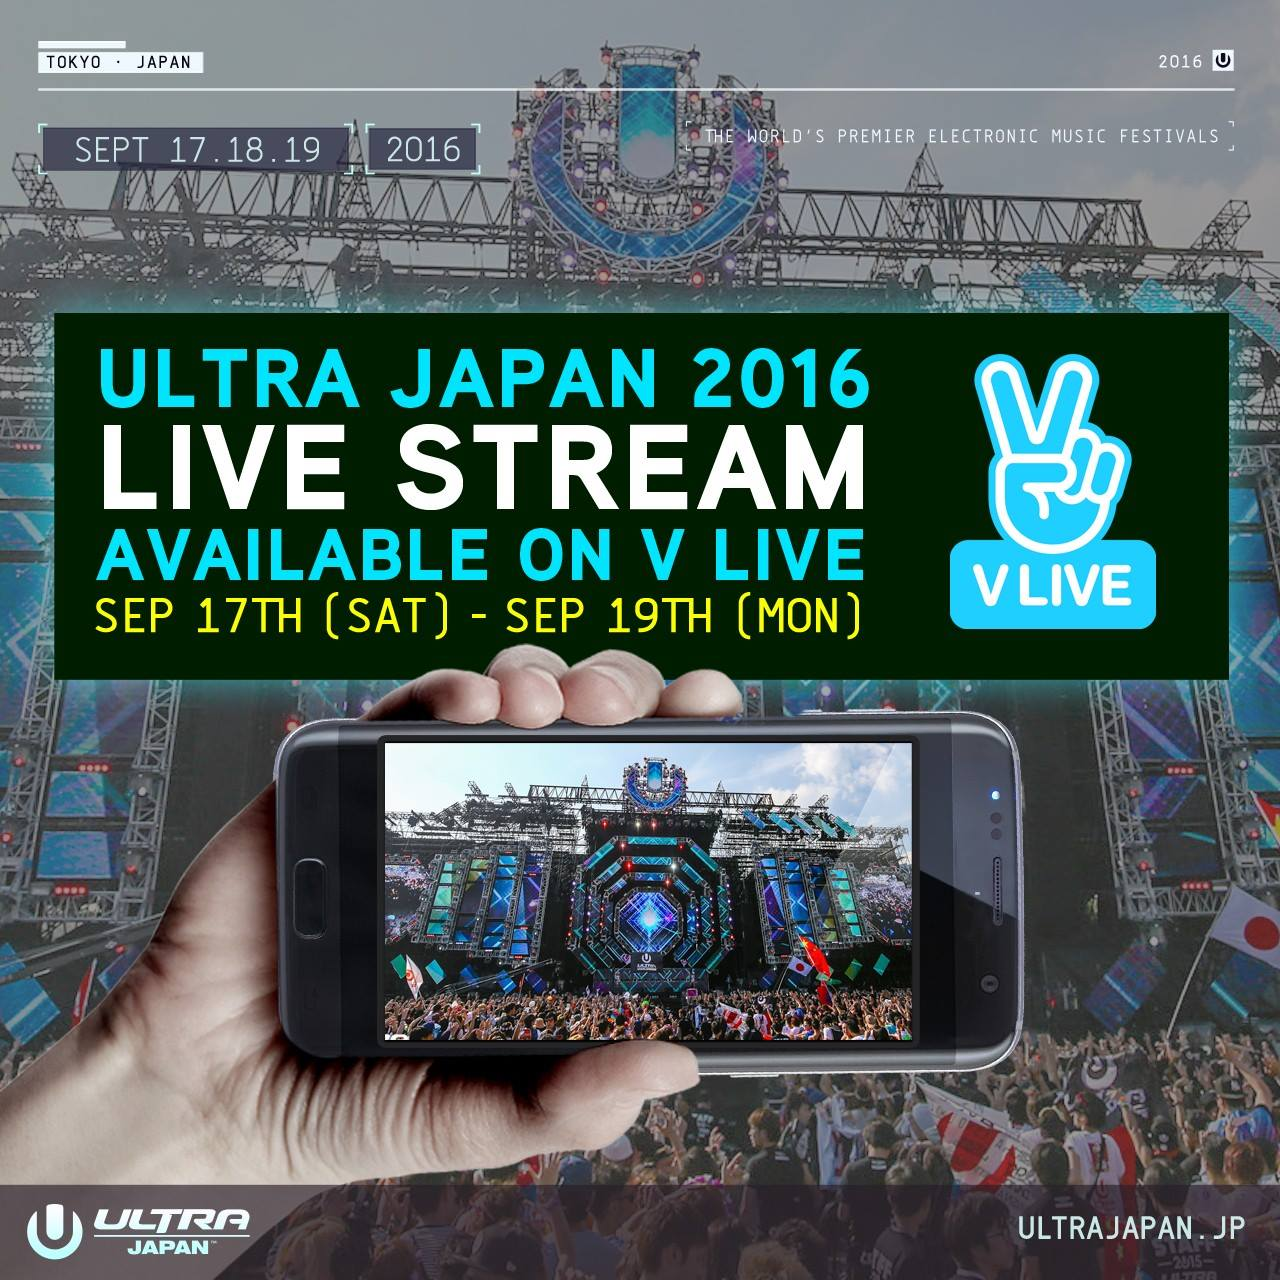 ULTRA JAPAN 2016 LIVE STREAM ON V LIVE